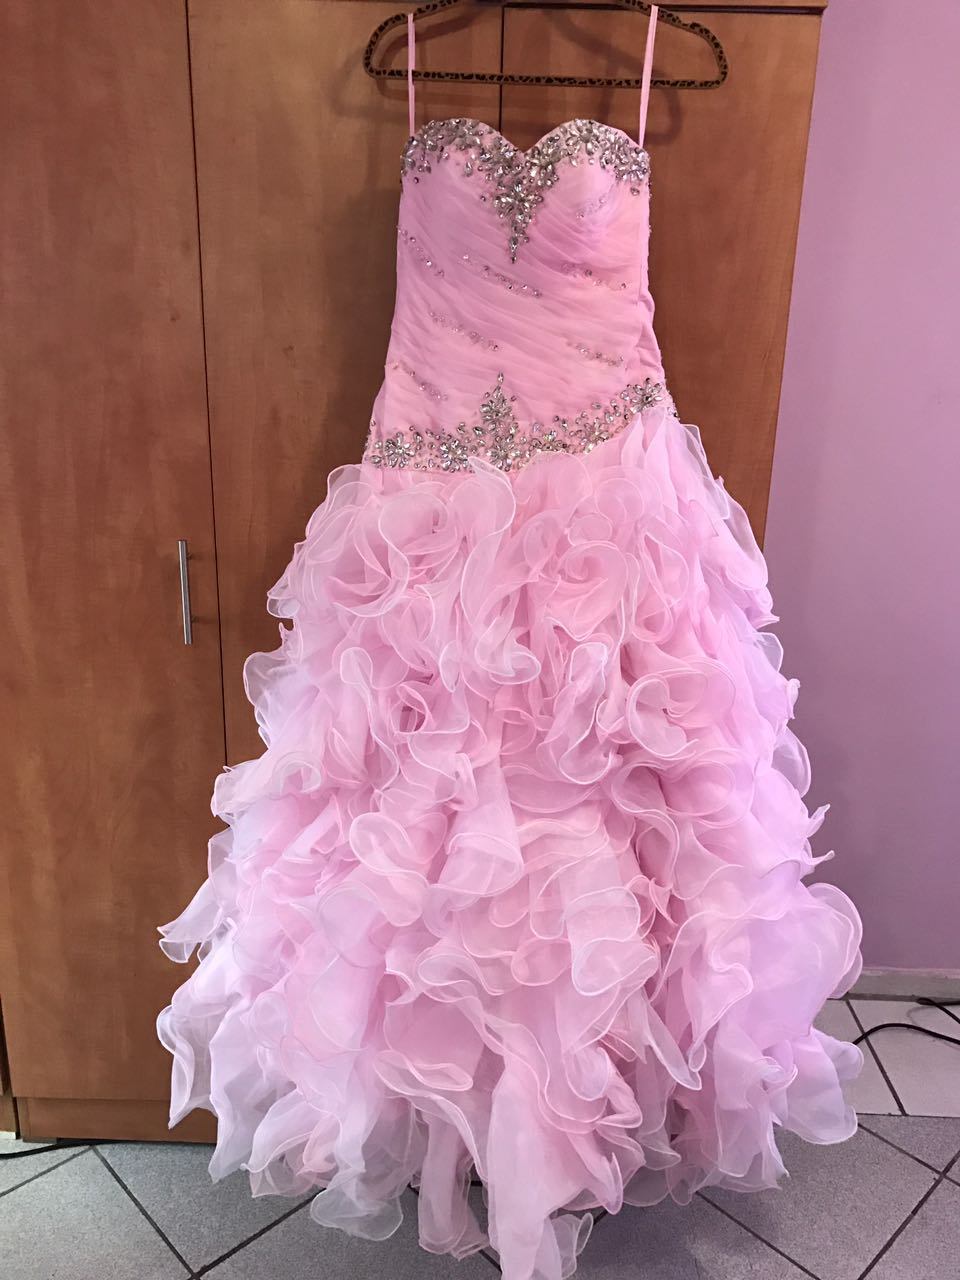 White & Pink Ball Gown | Junk Mail